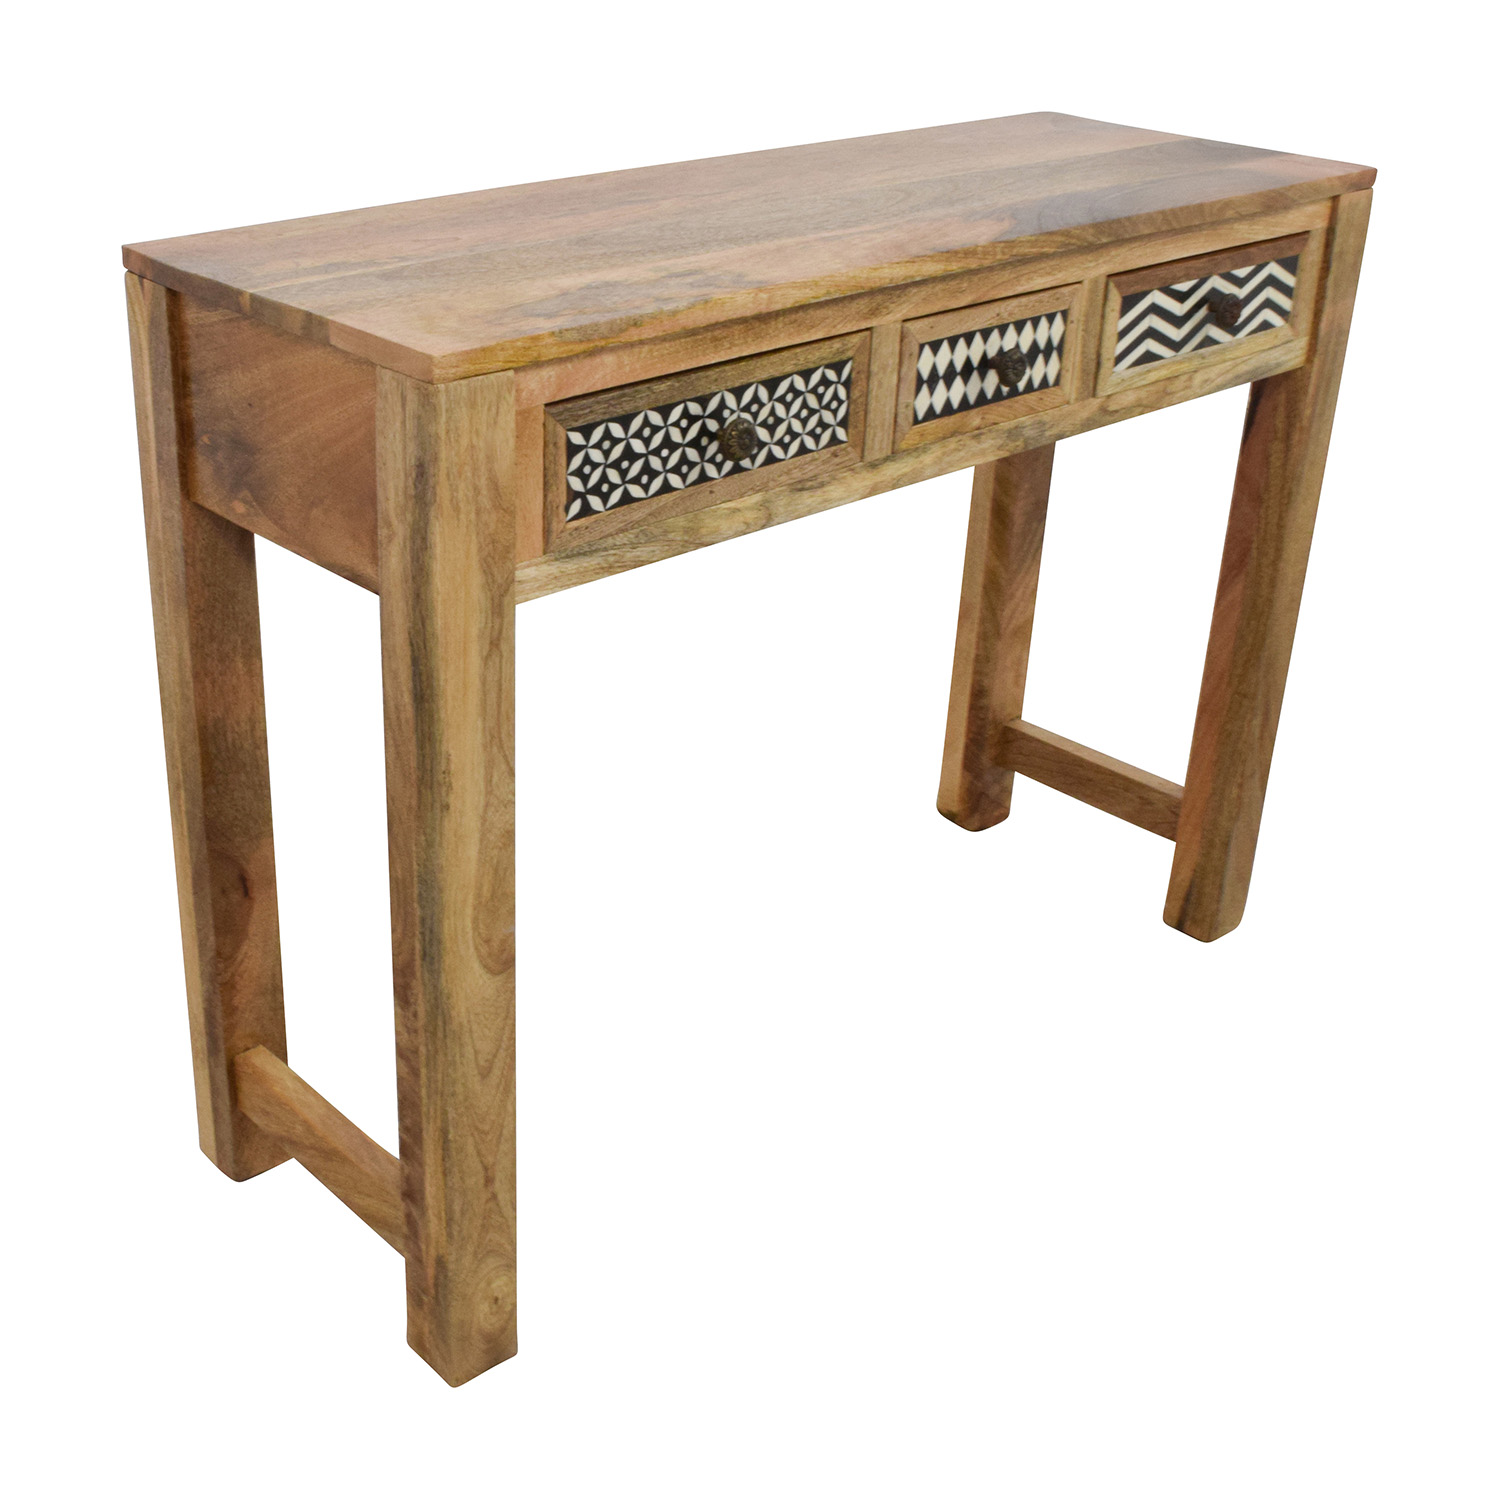 Off natural wood table with patterned drawers tables